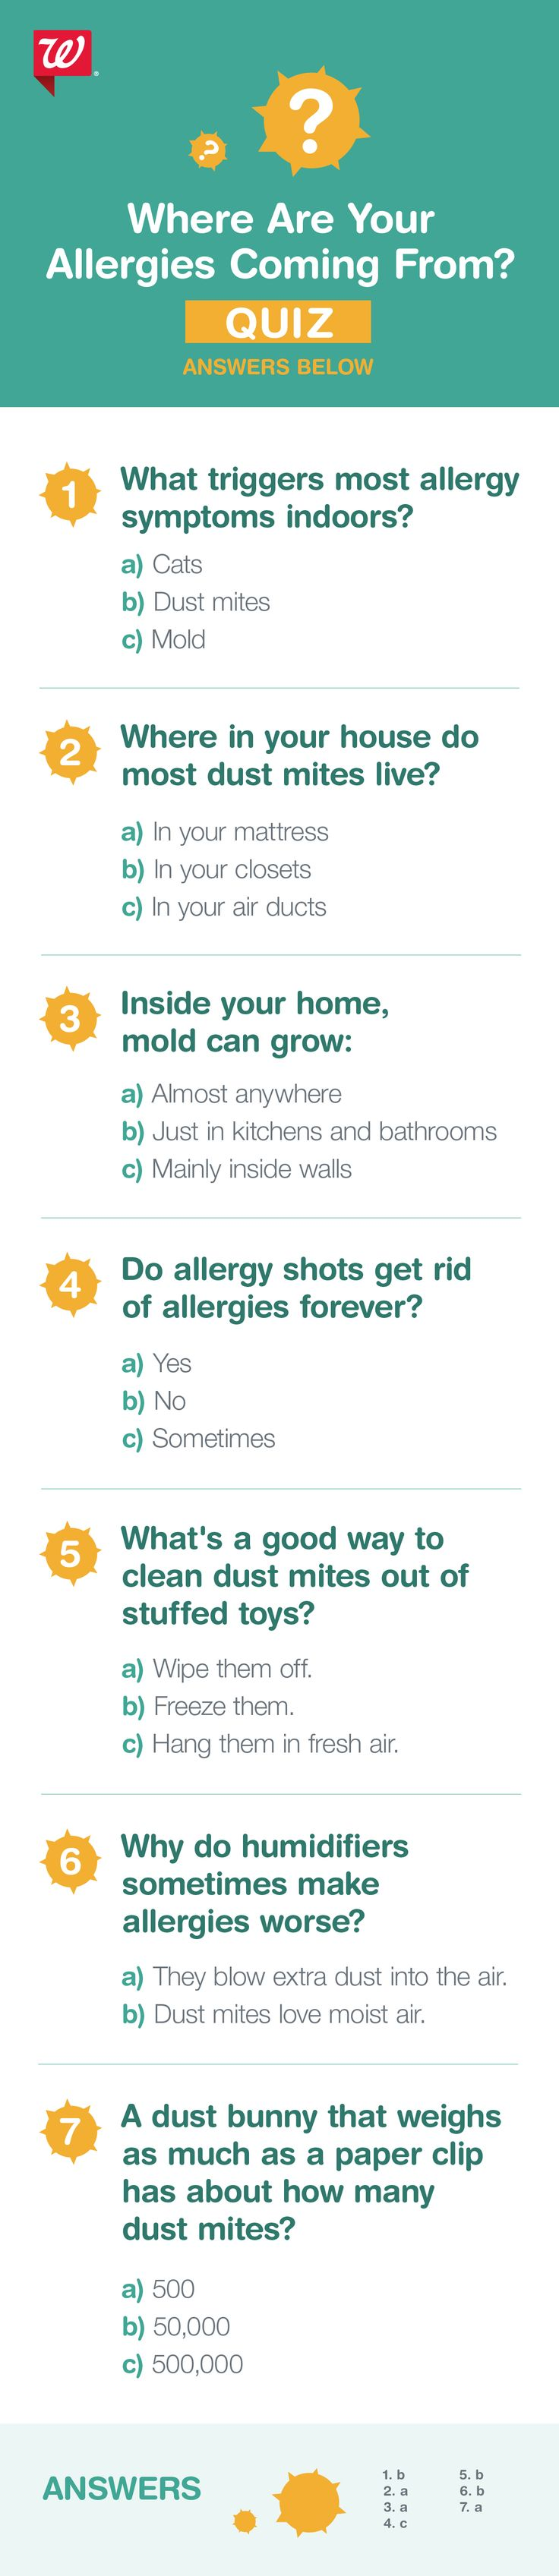 Do you know your allergy culprit? Take this quiz to find out.